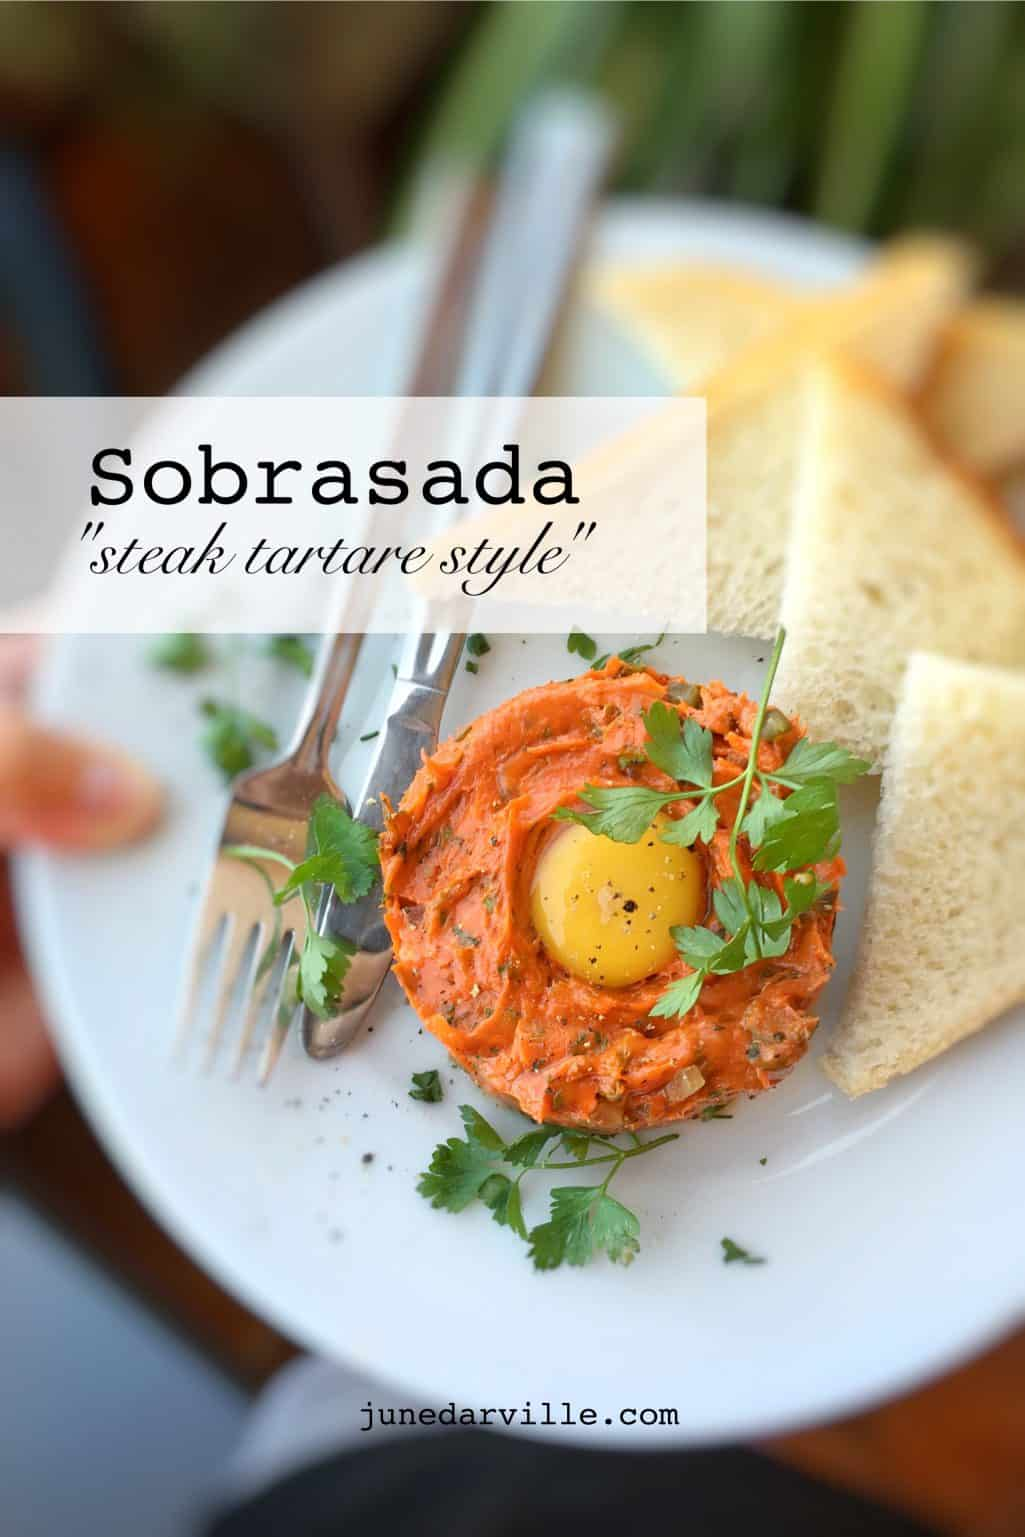 My tapas de sobrasada, steak tartare style... This is what happens when a Belgian foodie decides to live in culinary Spain!